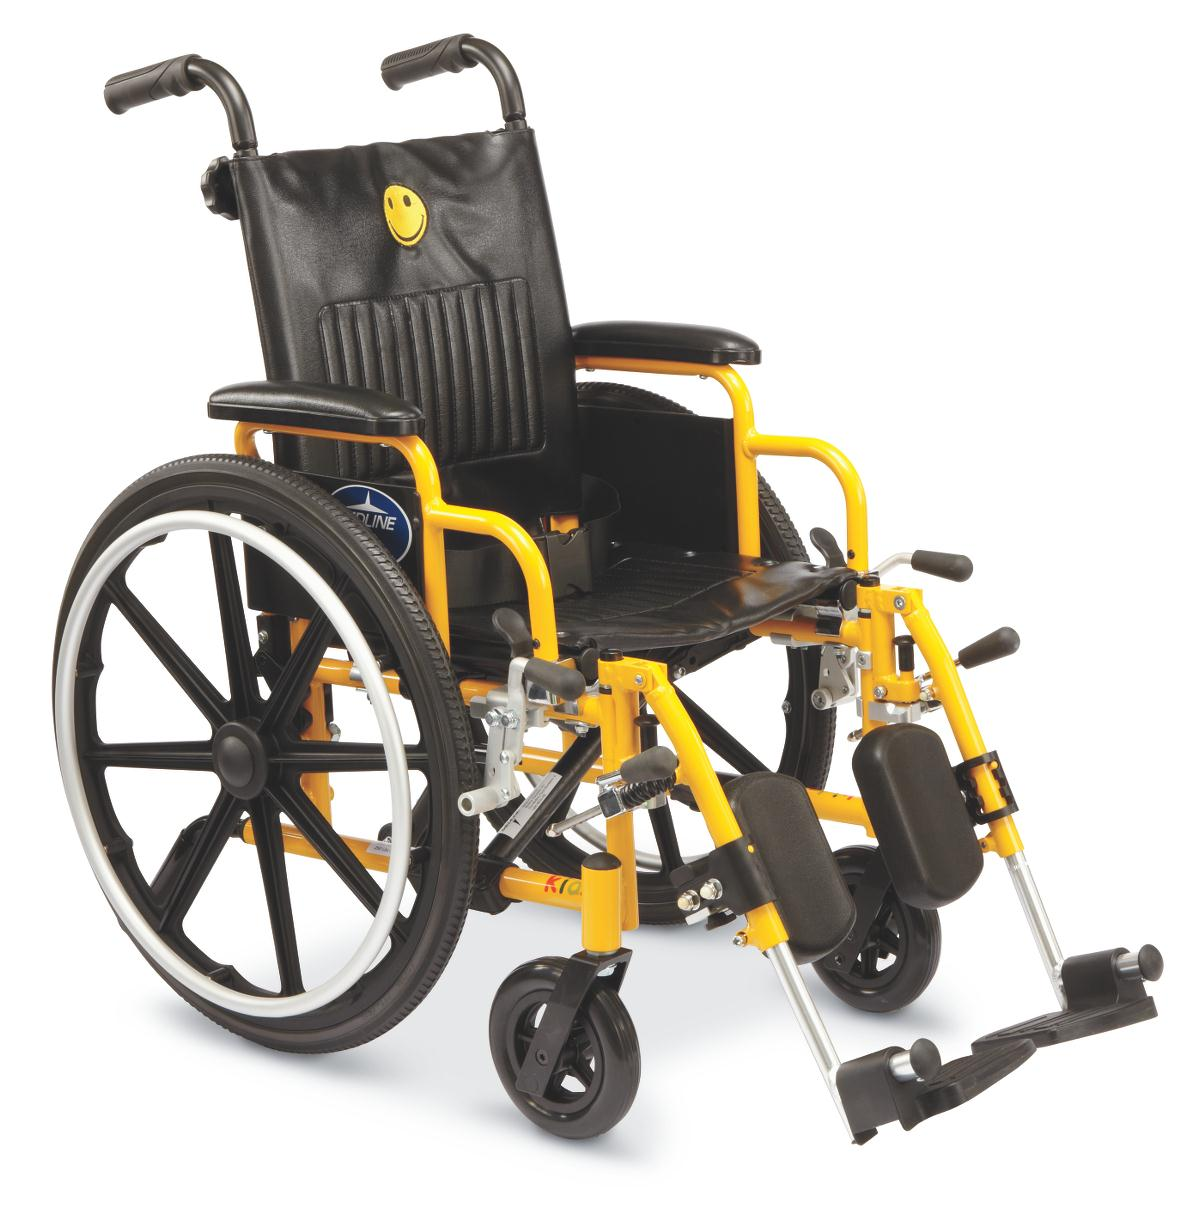 Medline Kidz Manual Pediatric Wheelchair Parts